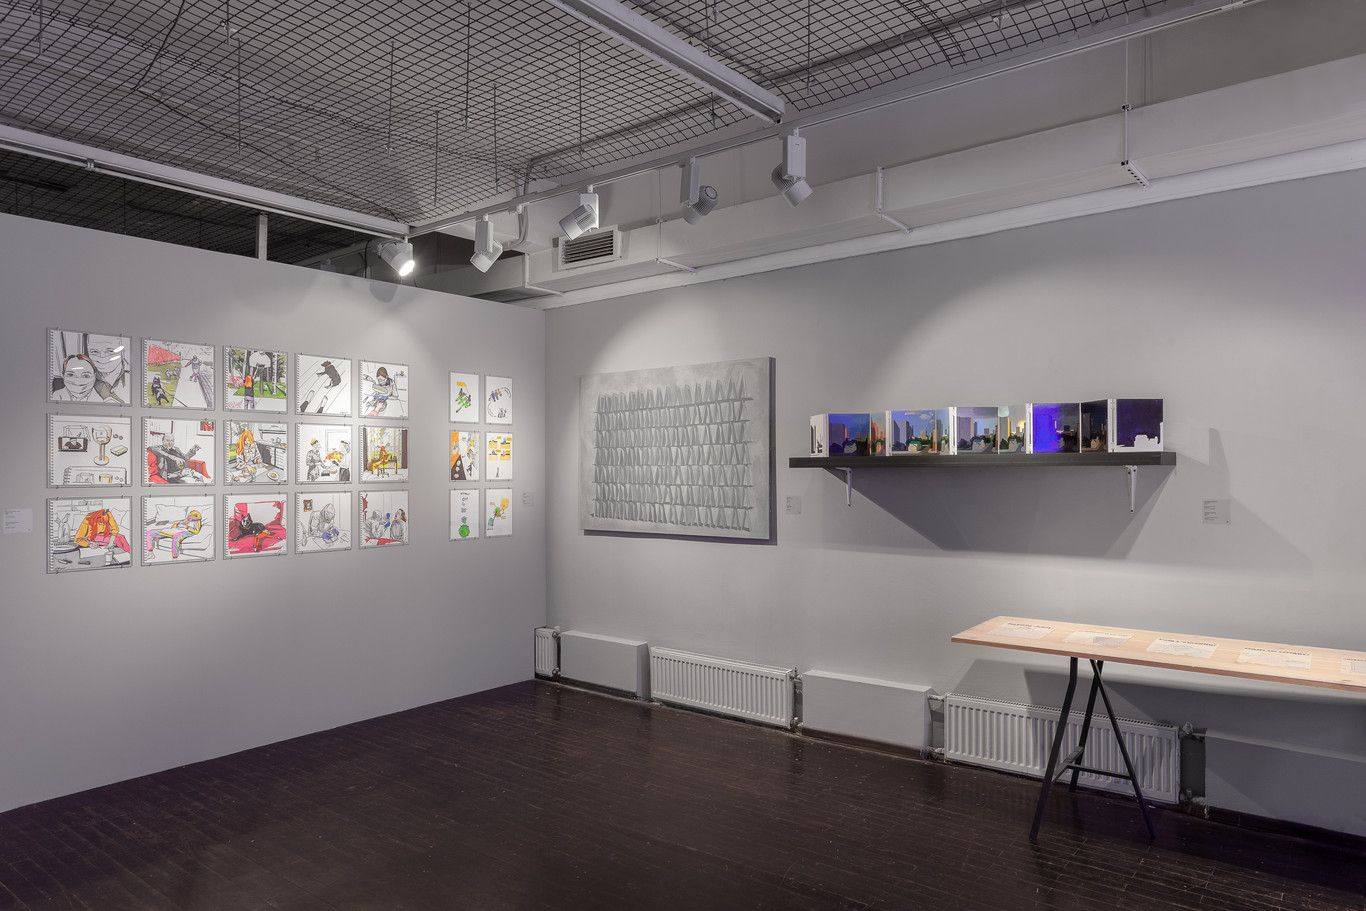 Exposition view 2020